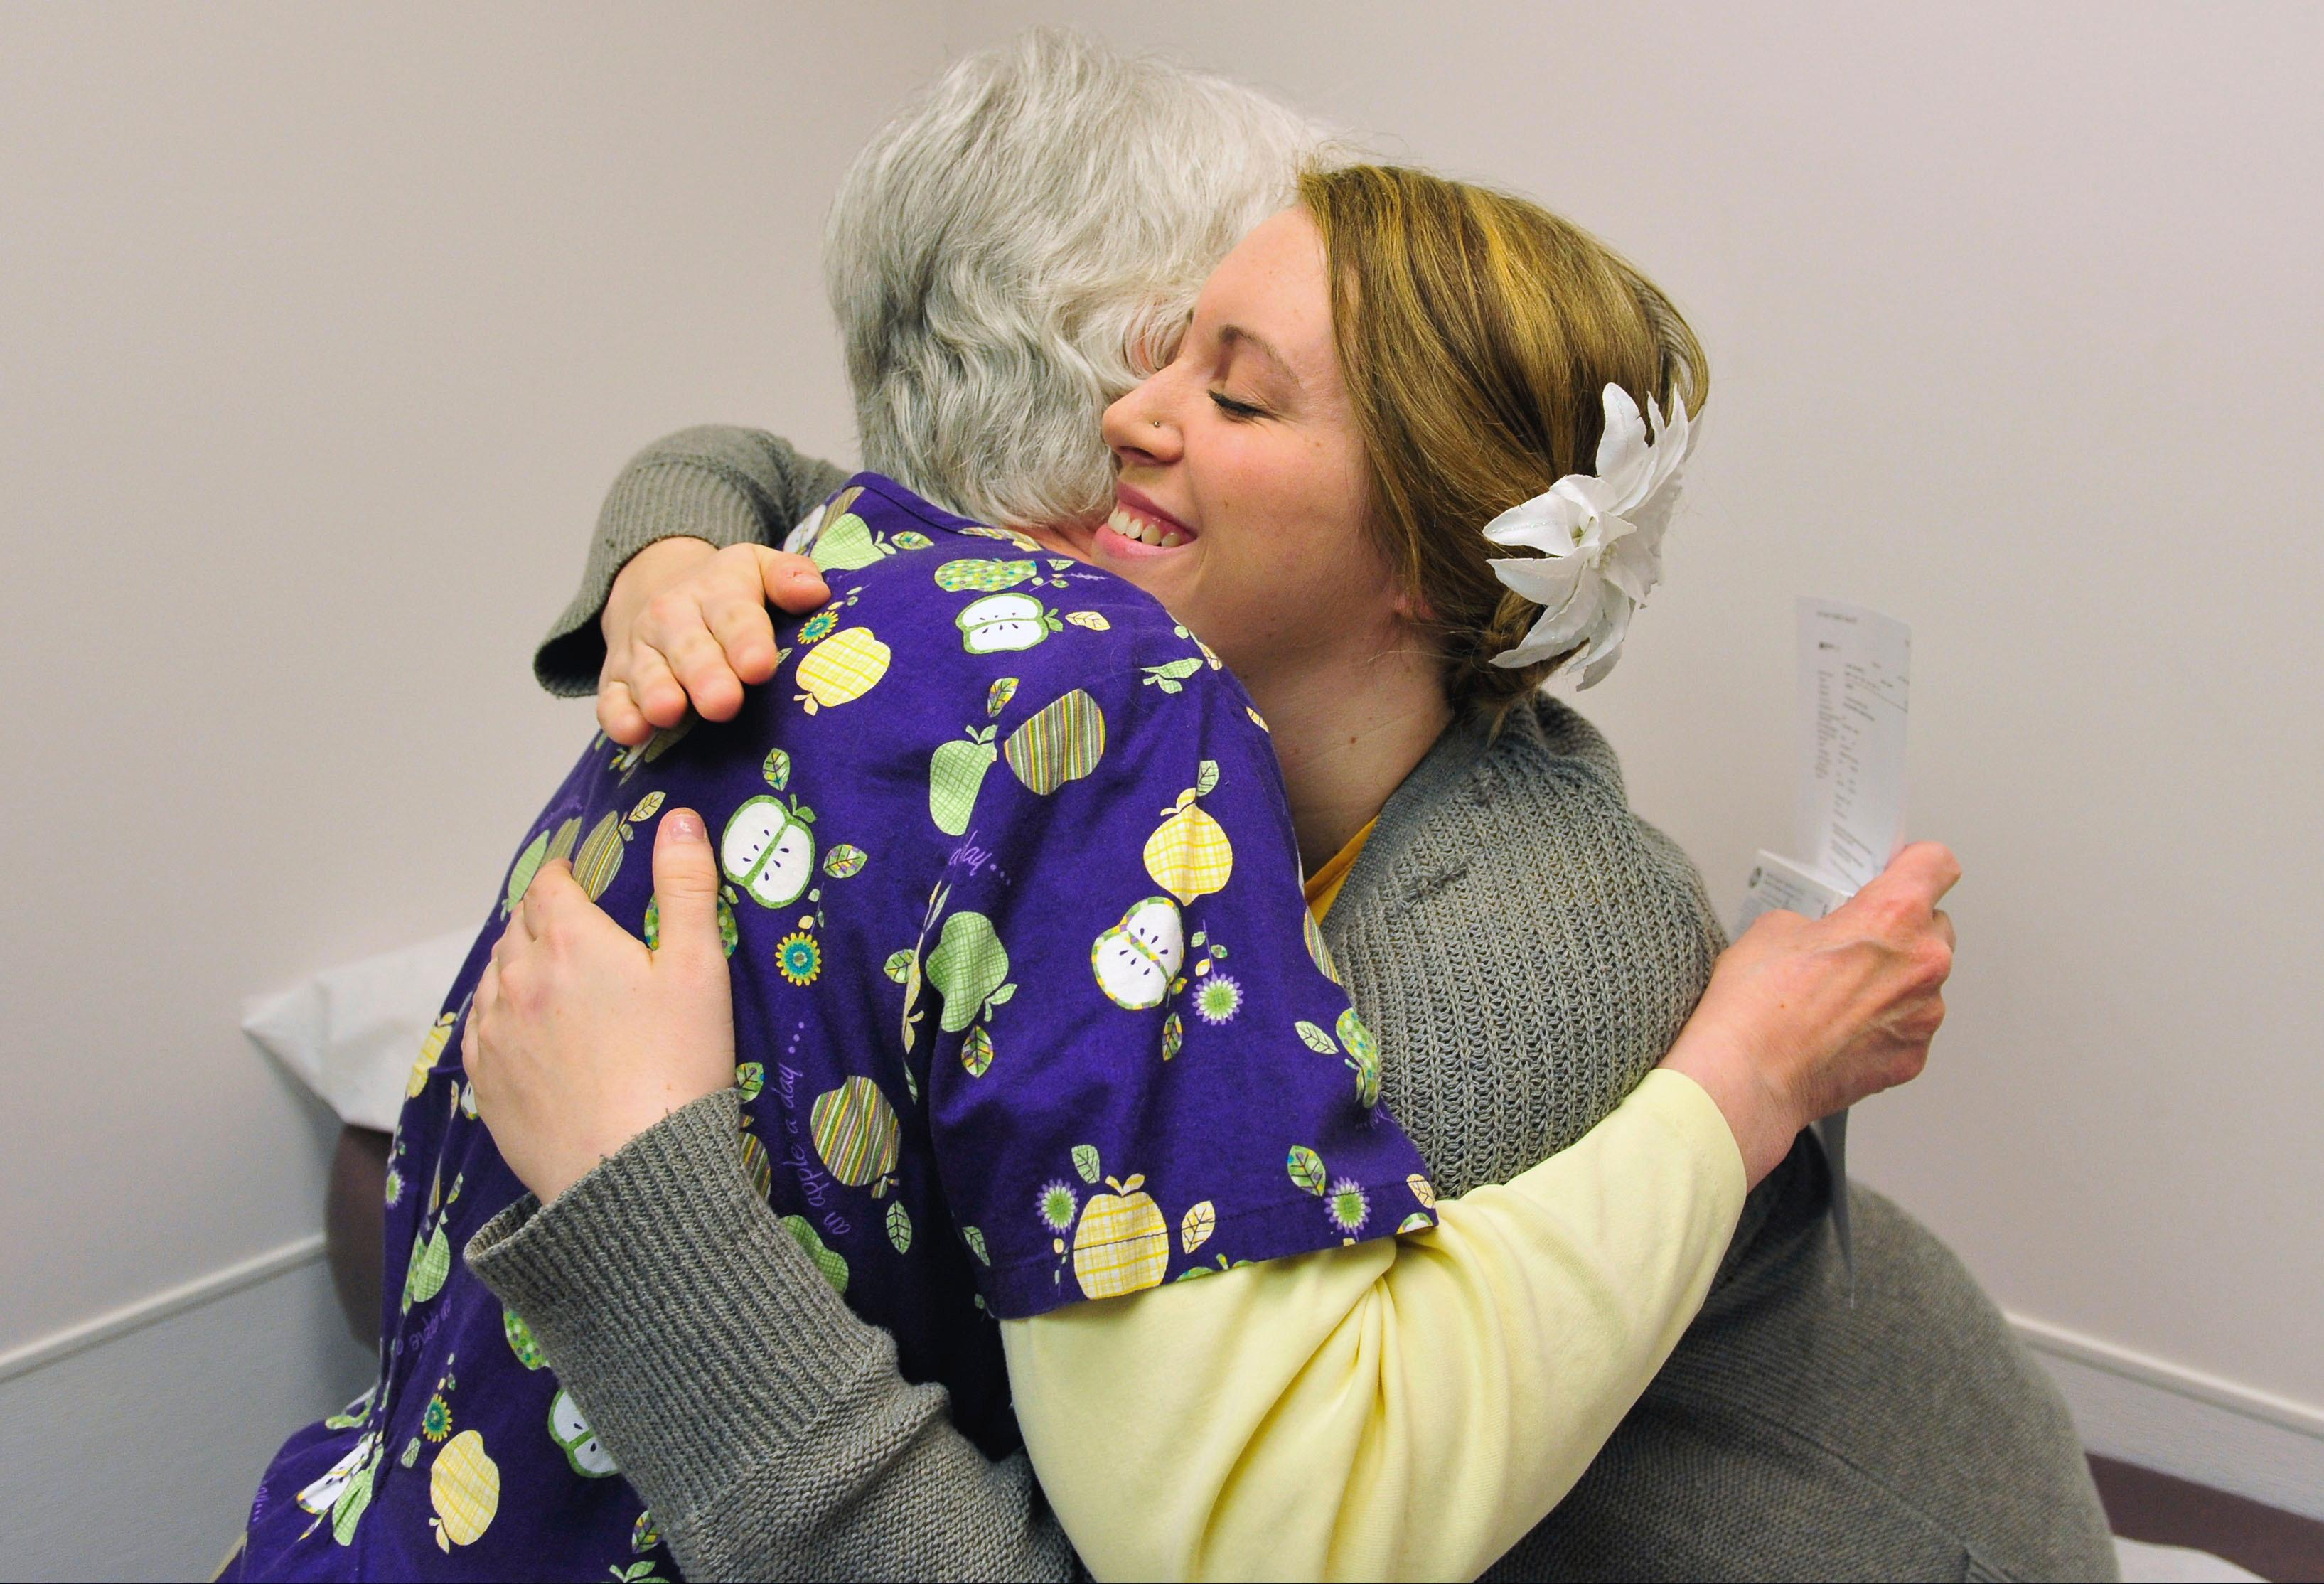 Pharmacist Kathie Gasper hugs patient Heidi Wyandt, 27, after receiving an injection as part of an experimental non-opioid pain medication trial at the Altoona Center for Clinical Research in Altoona, Pa., on Wednesday, March 29, 2017. Wyandt has chronic back pain related to a work related injury she received in 2014. With about 2 million Americans hooked on opioid painkillers, researchers and drug companies are searching for less addictive drugs to treat pain. (AP Photo/Chris Post)